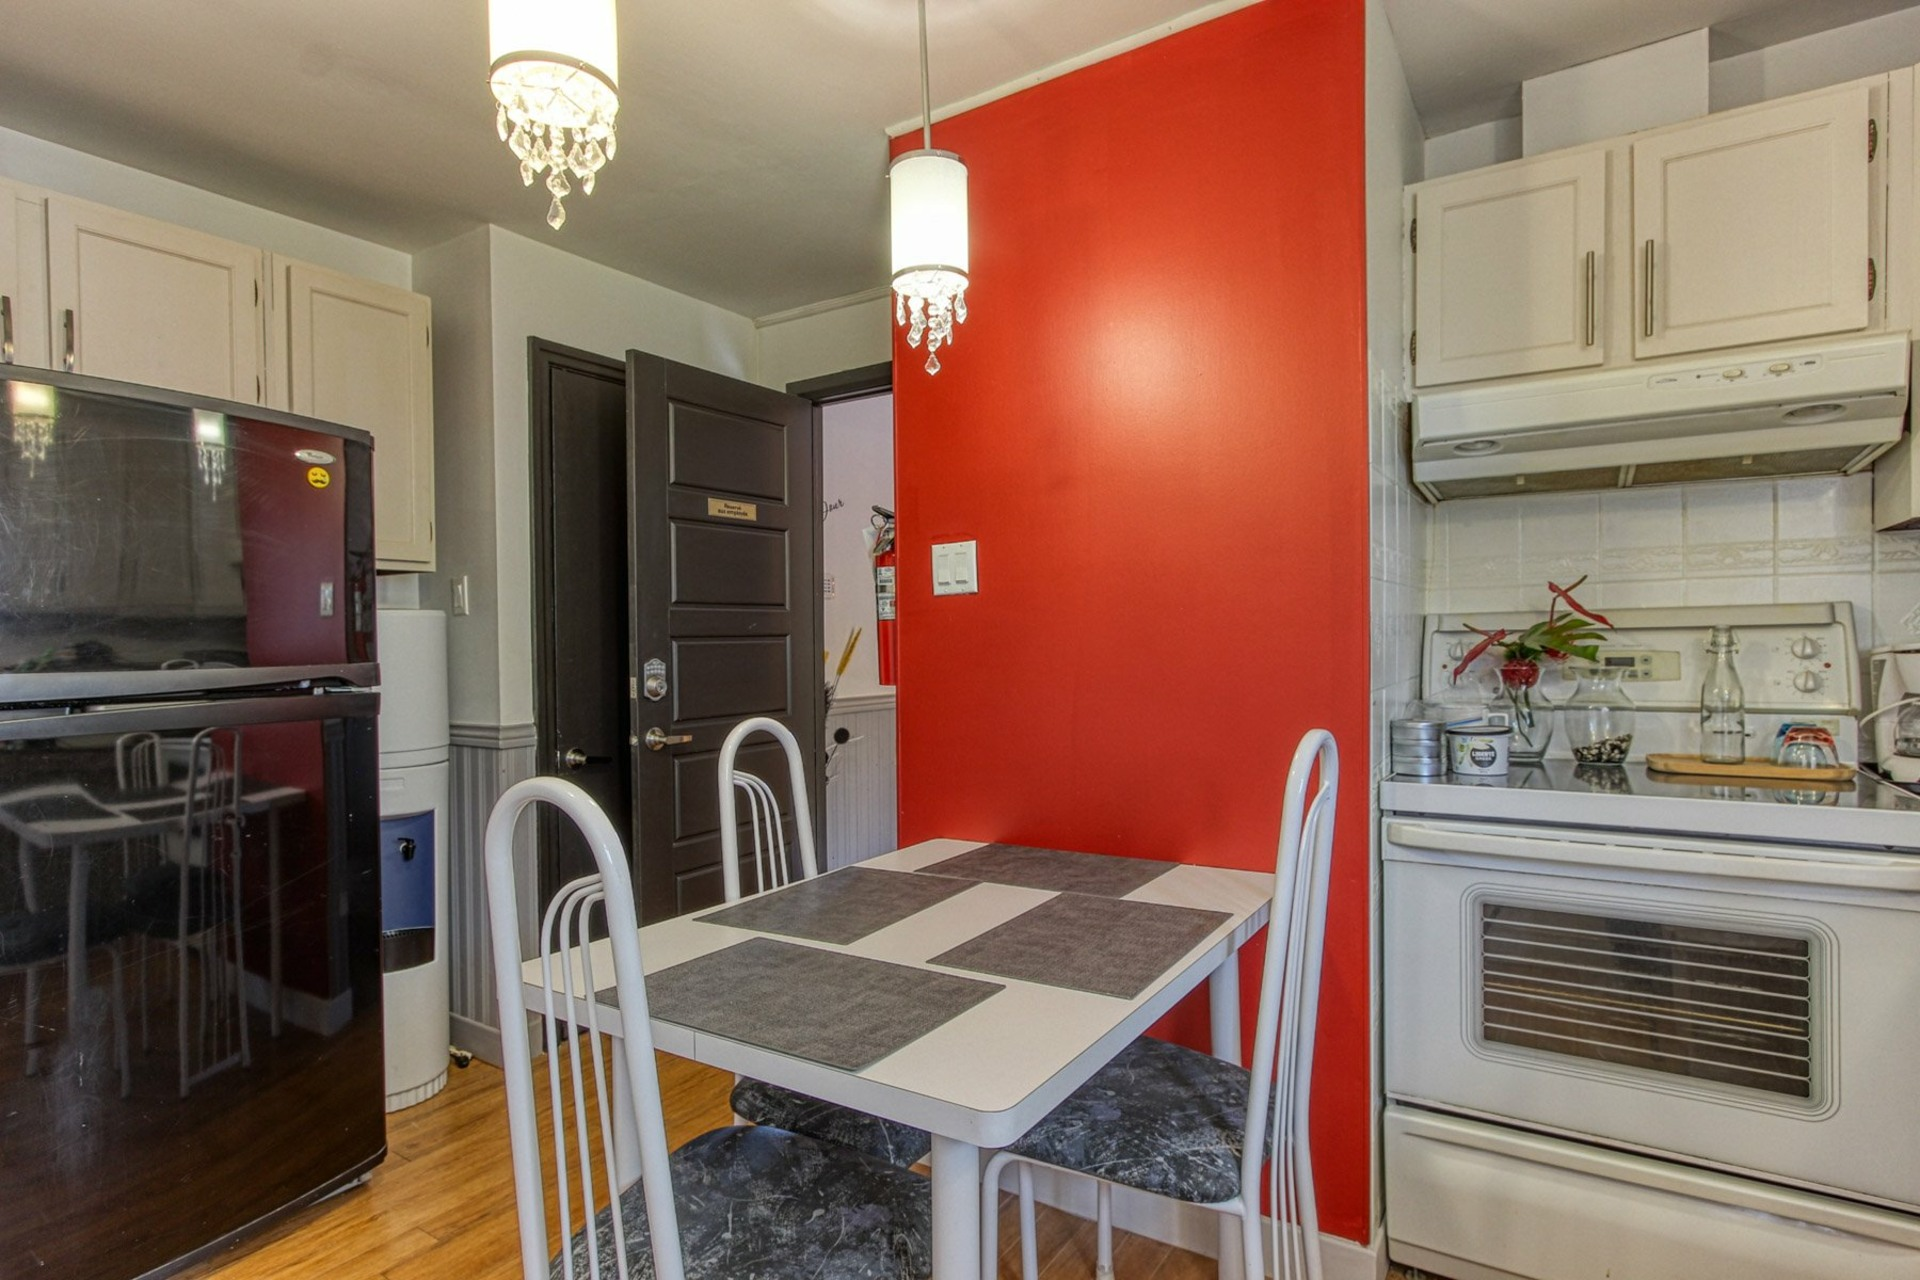 image 6 - House For sale Bécancour - 8 rooms